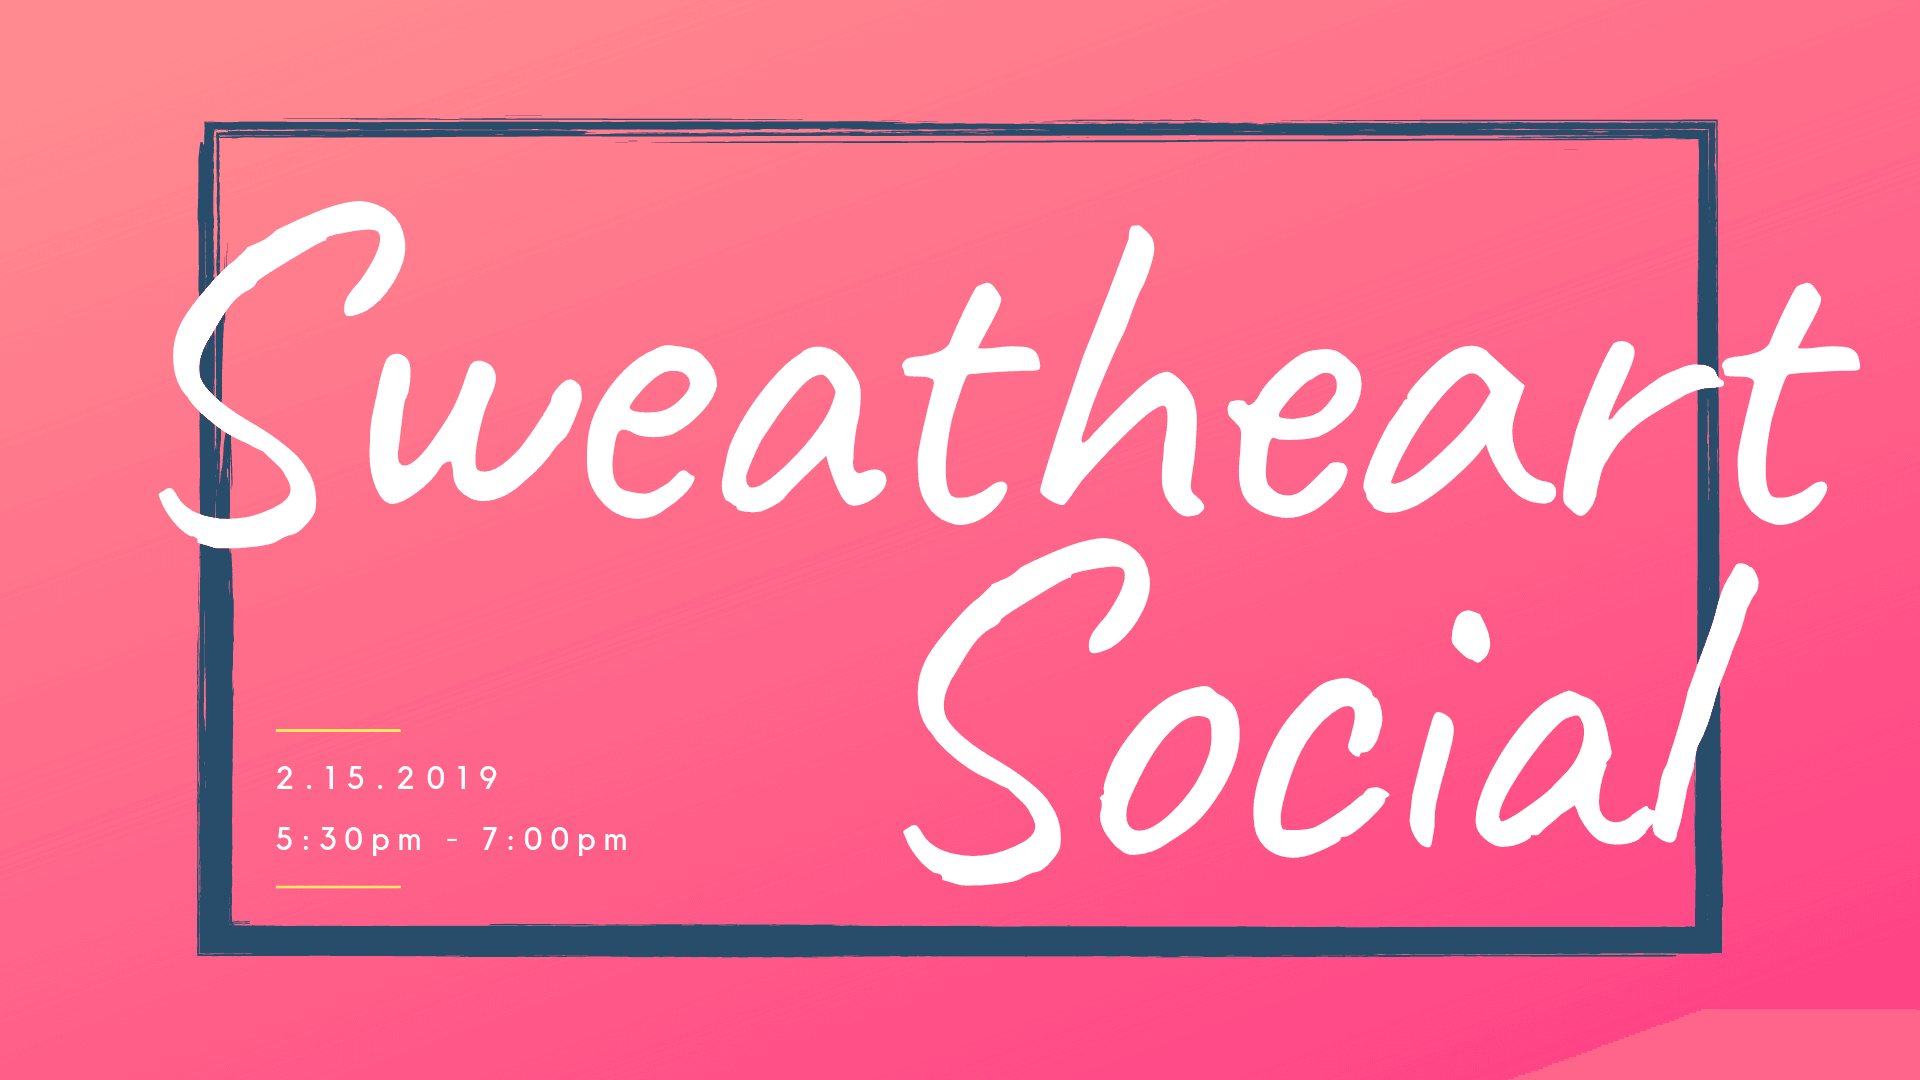 Sweatheart Social 2019 - Website Image